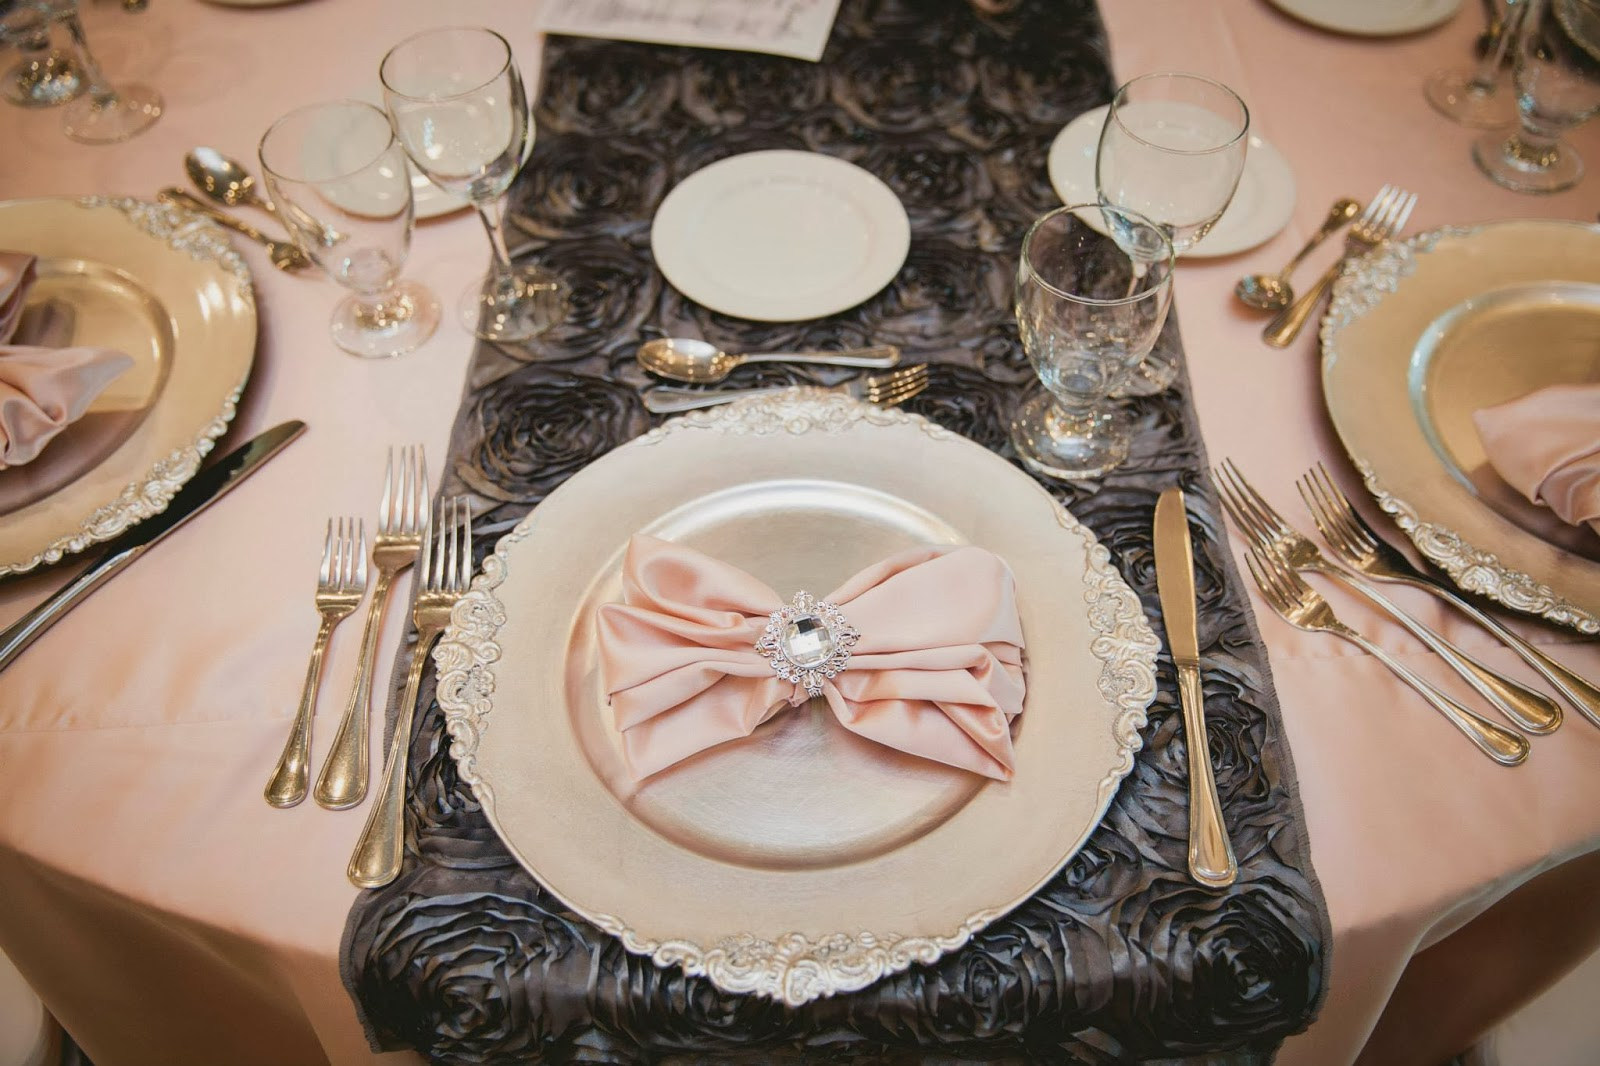 pink and grey wedding rosette table runner gala decor elizabeth in love casablanca winery inn grimsby wedding photos, kj and co wedding burlington ontario planner